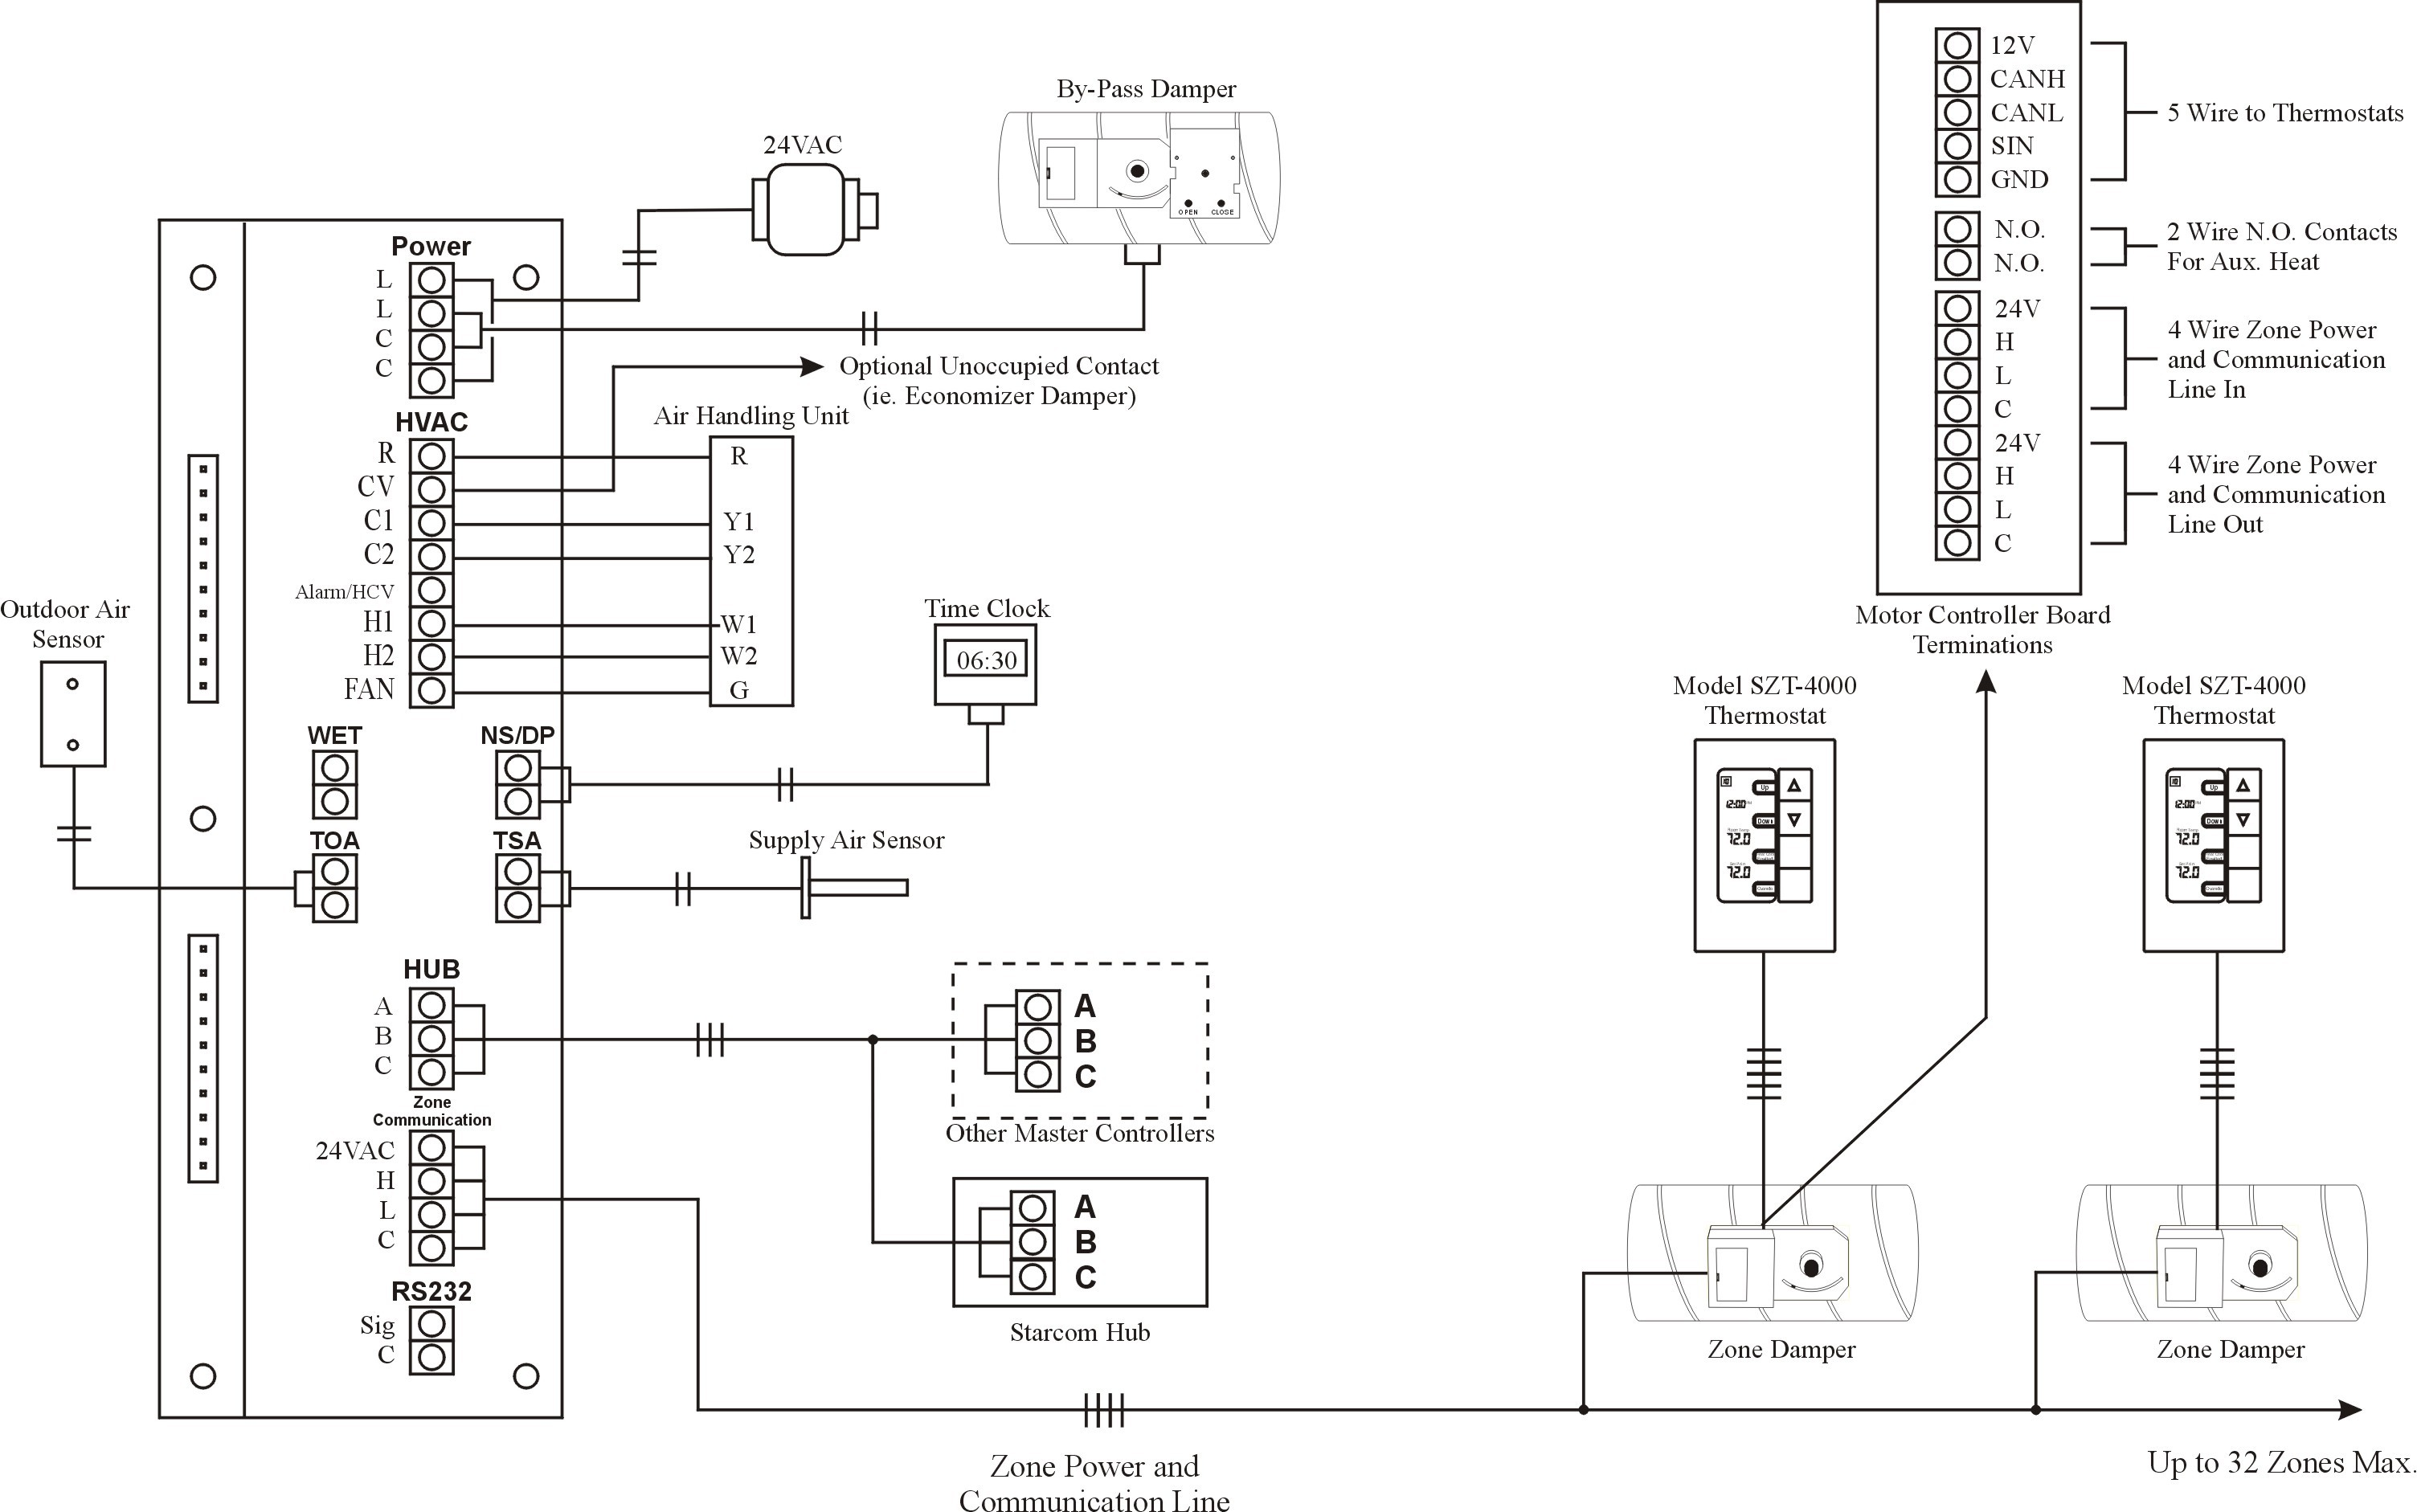 Fire Alarm System Wiring Diagram My Wiring Diagram